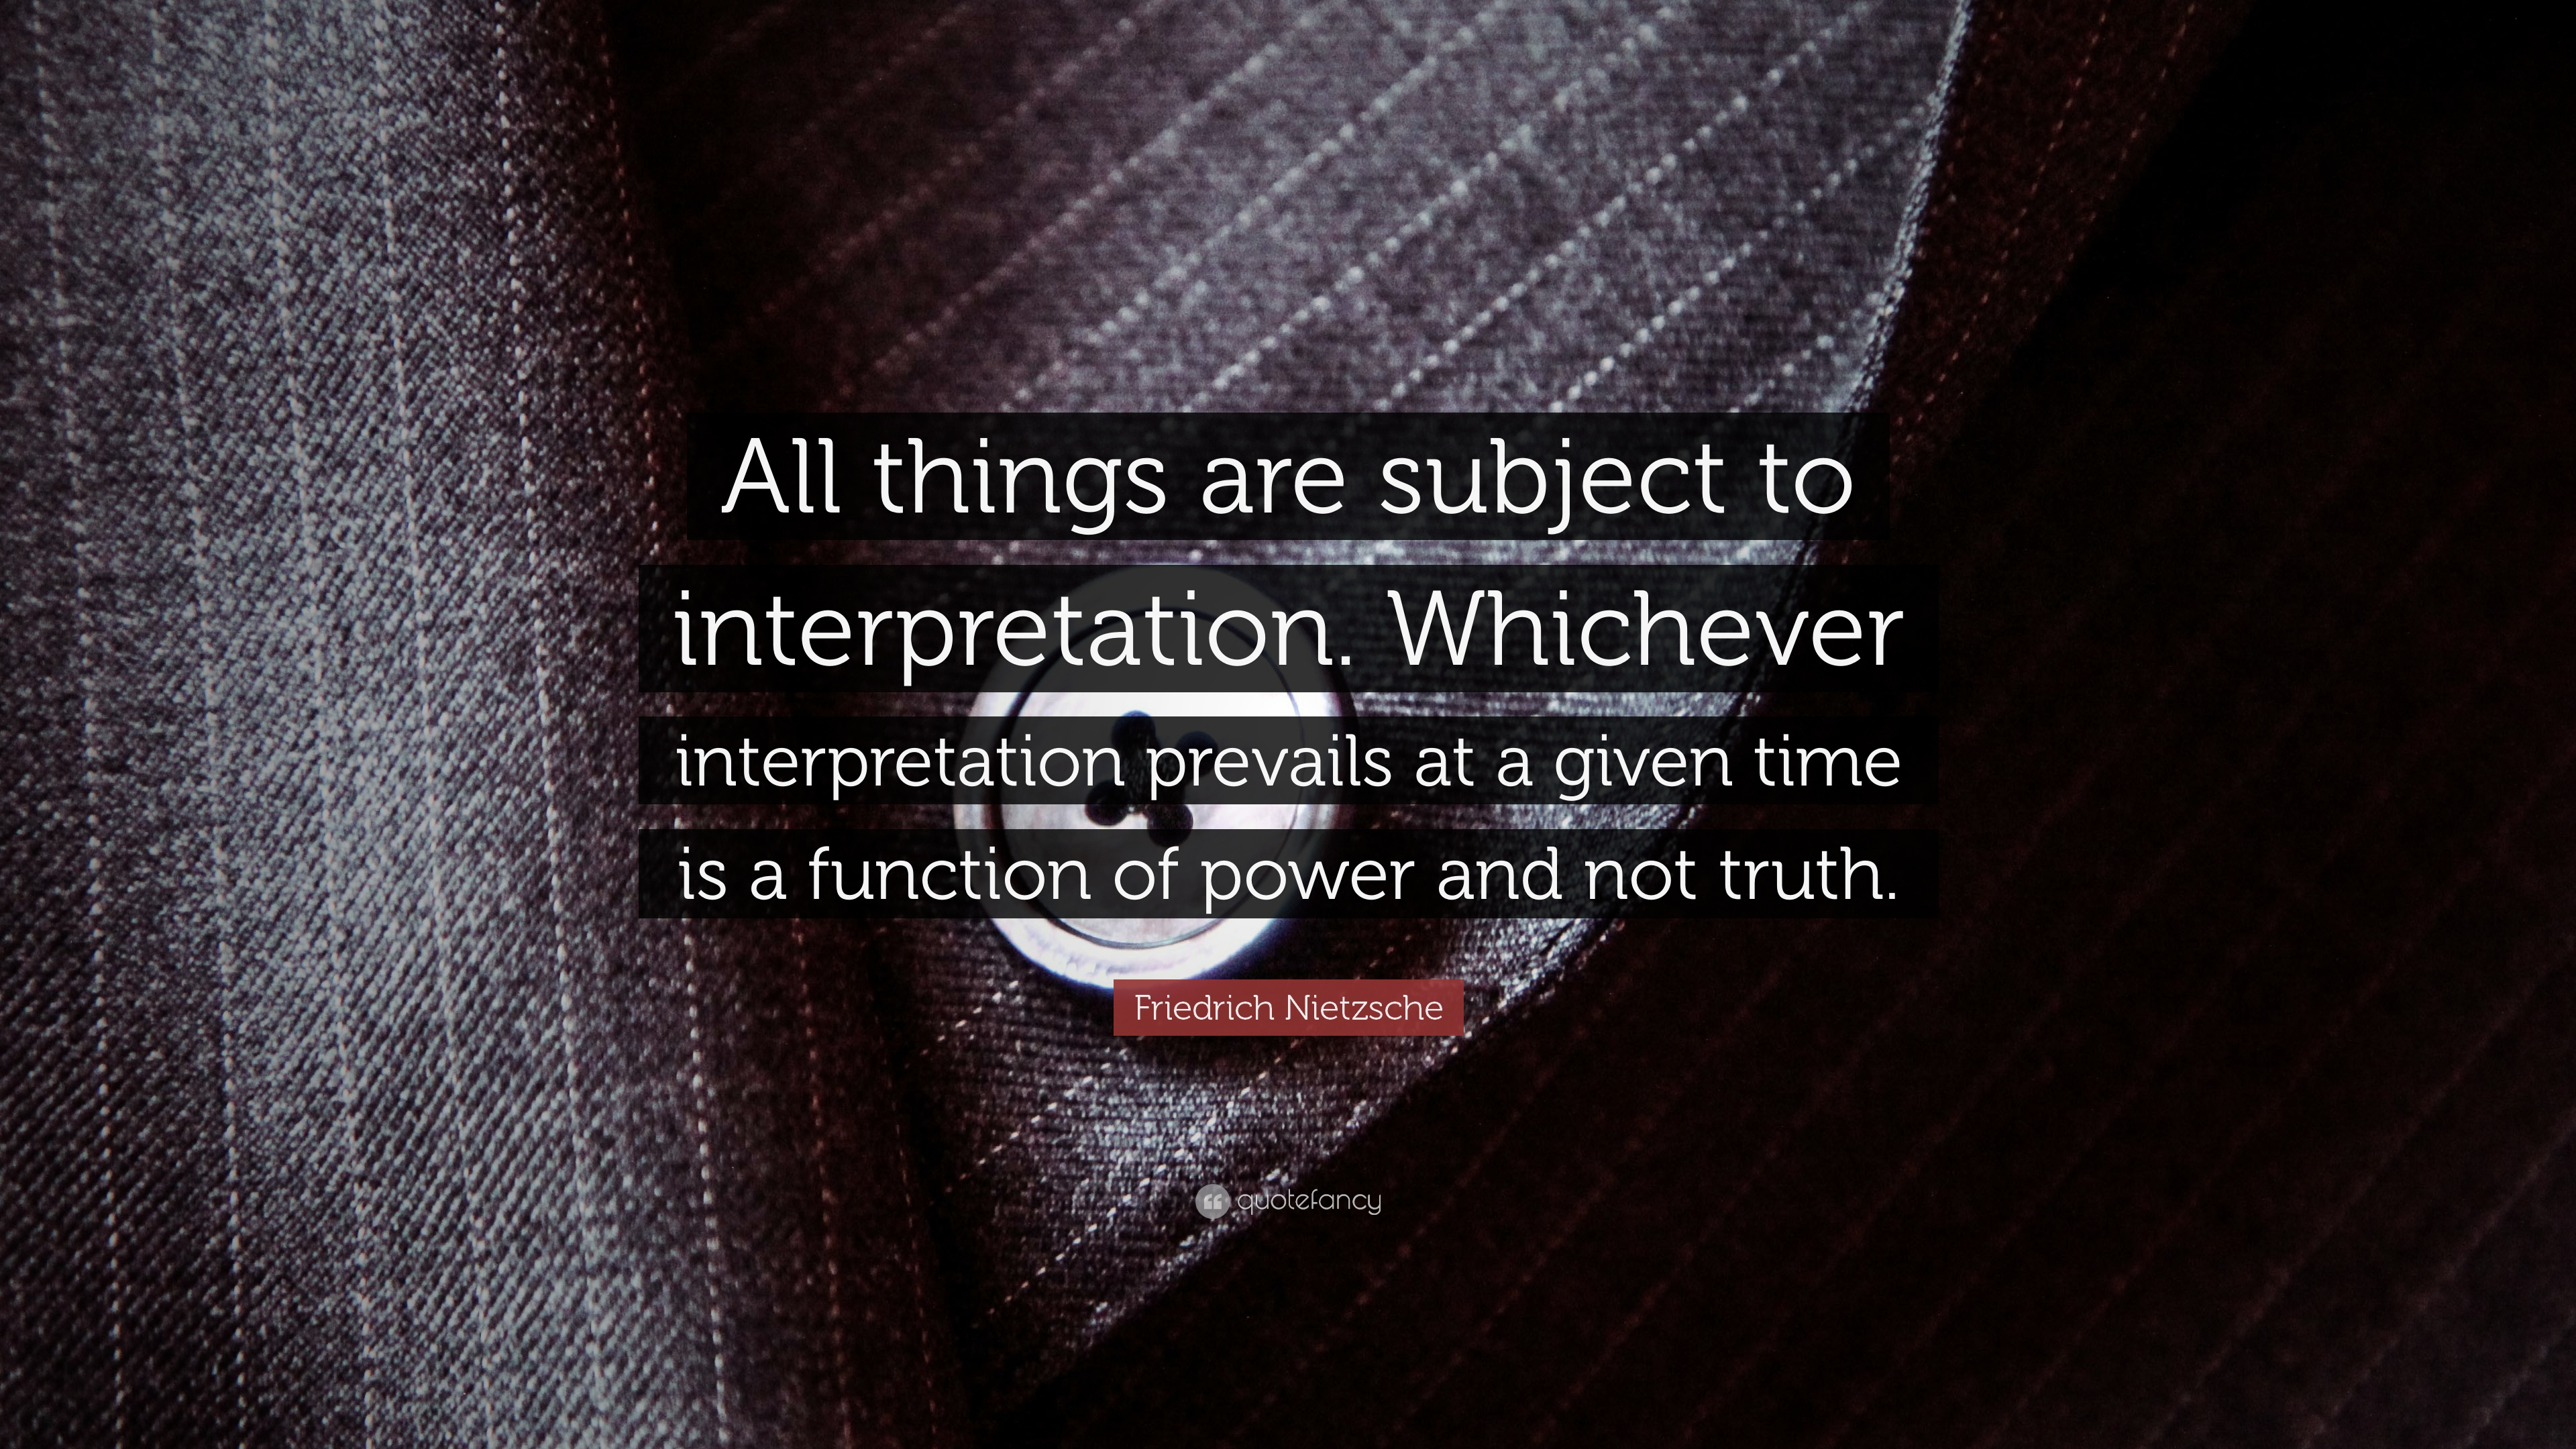 Friedrich Nietzsche Quote All Things Are Subject To Interpretation